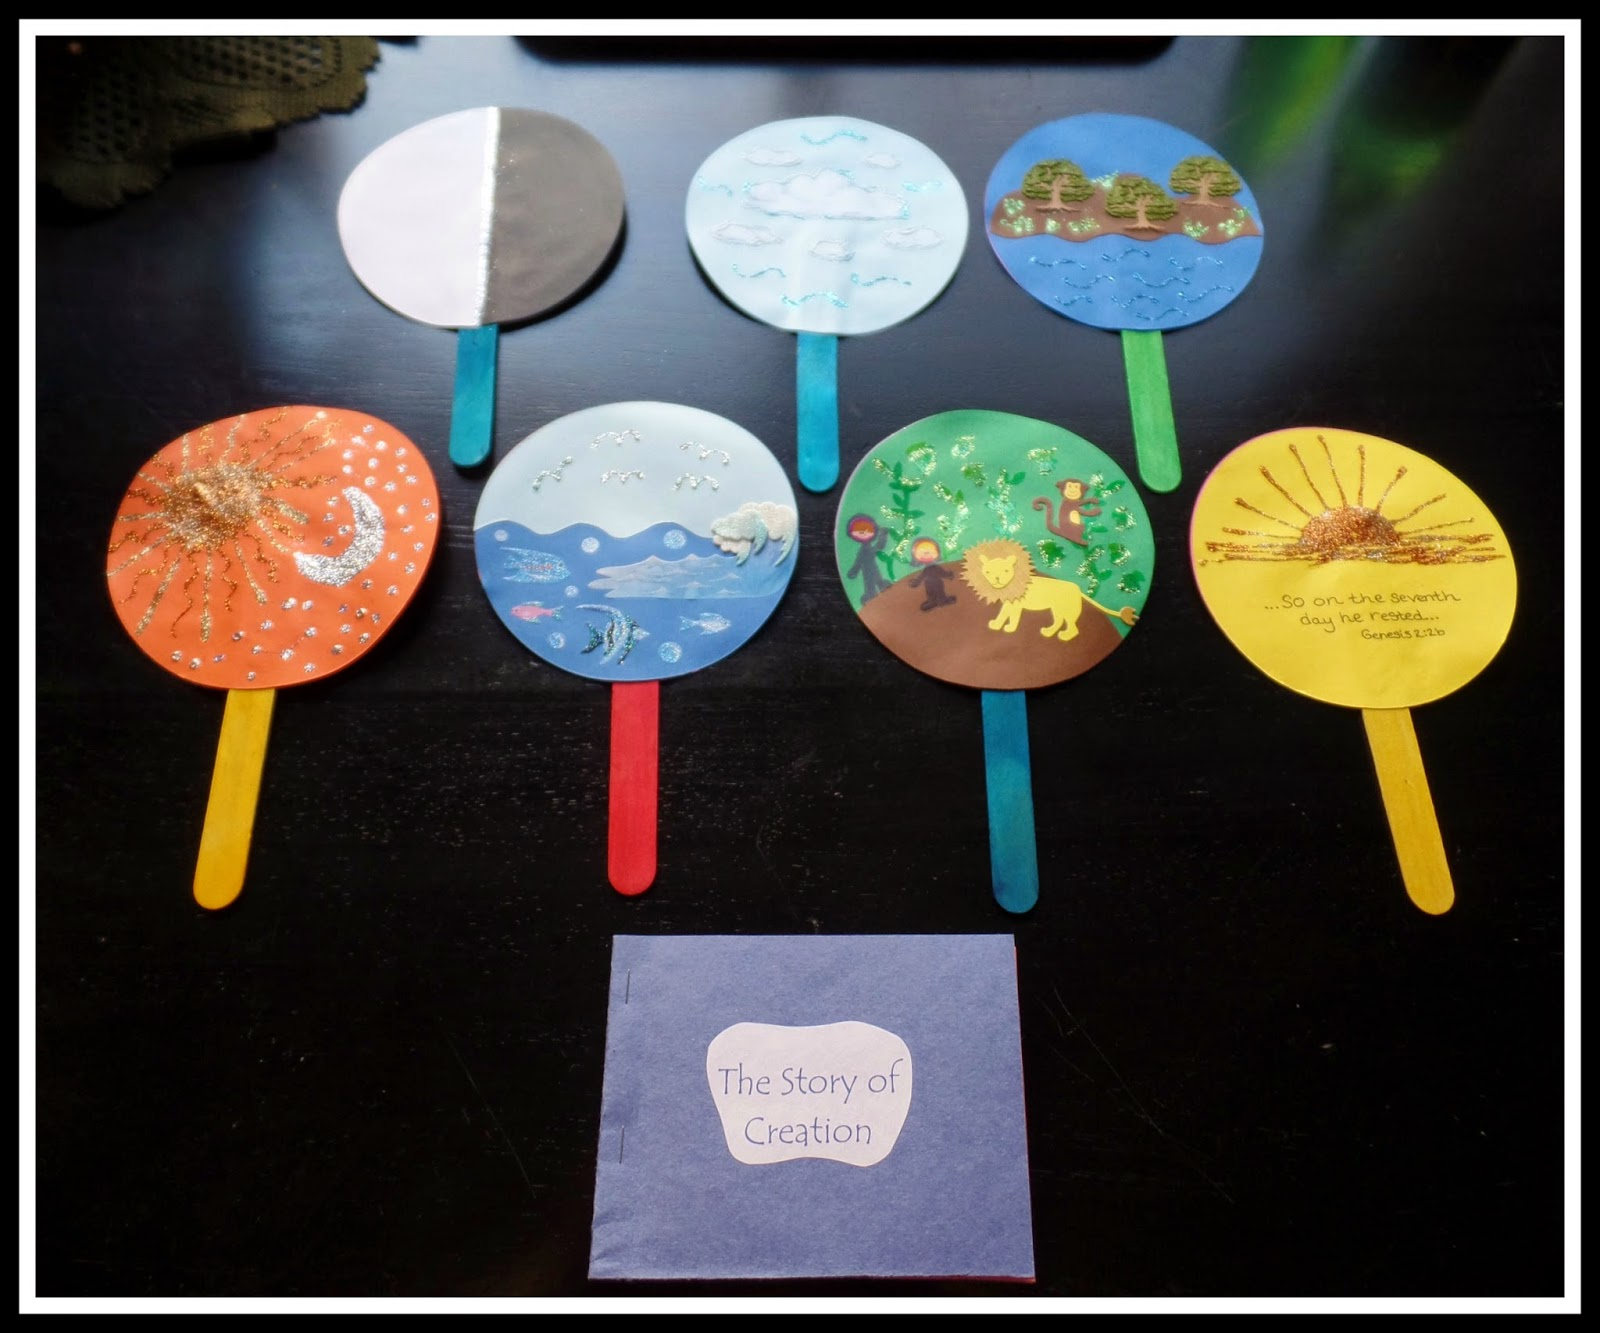 New Years Wishing Wand together with Children Of The World Coloring Sheet together with Makining Lion Masks And Paper Creations in addition Bible lessons together with Simply Sunday School Creation Story. on earth day activities for kids sunday